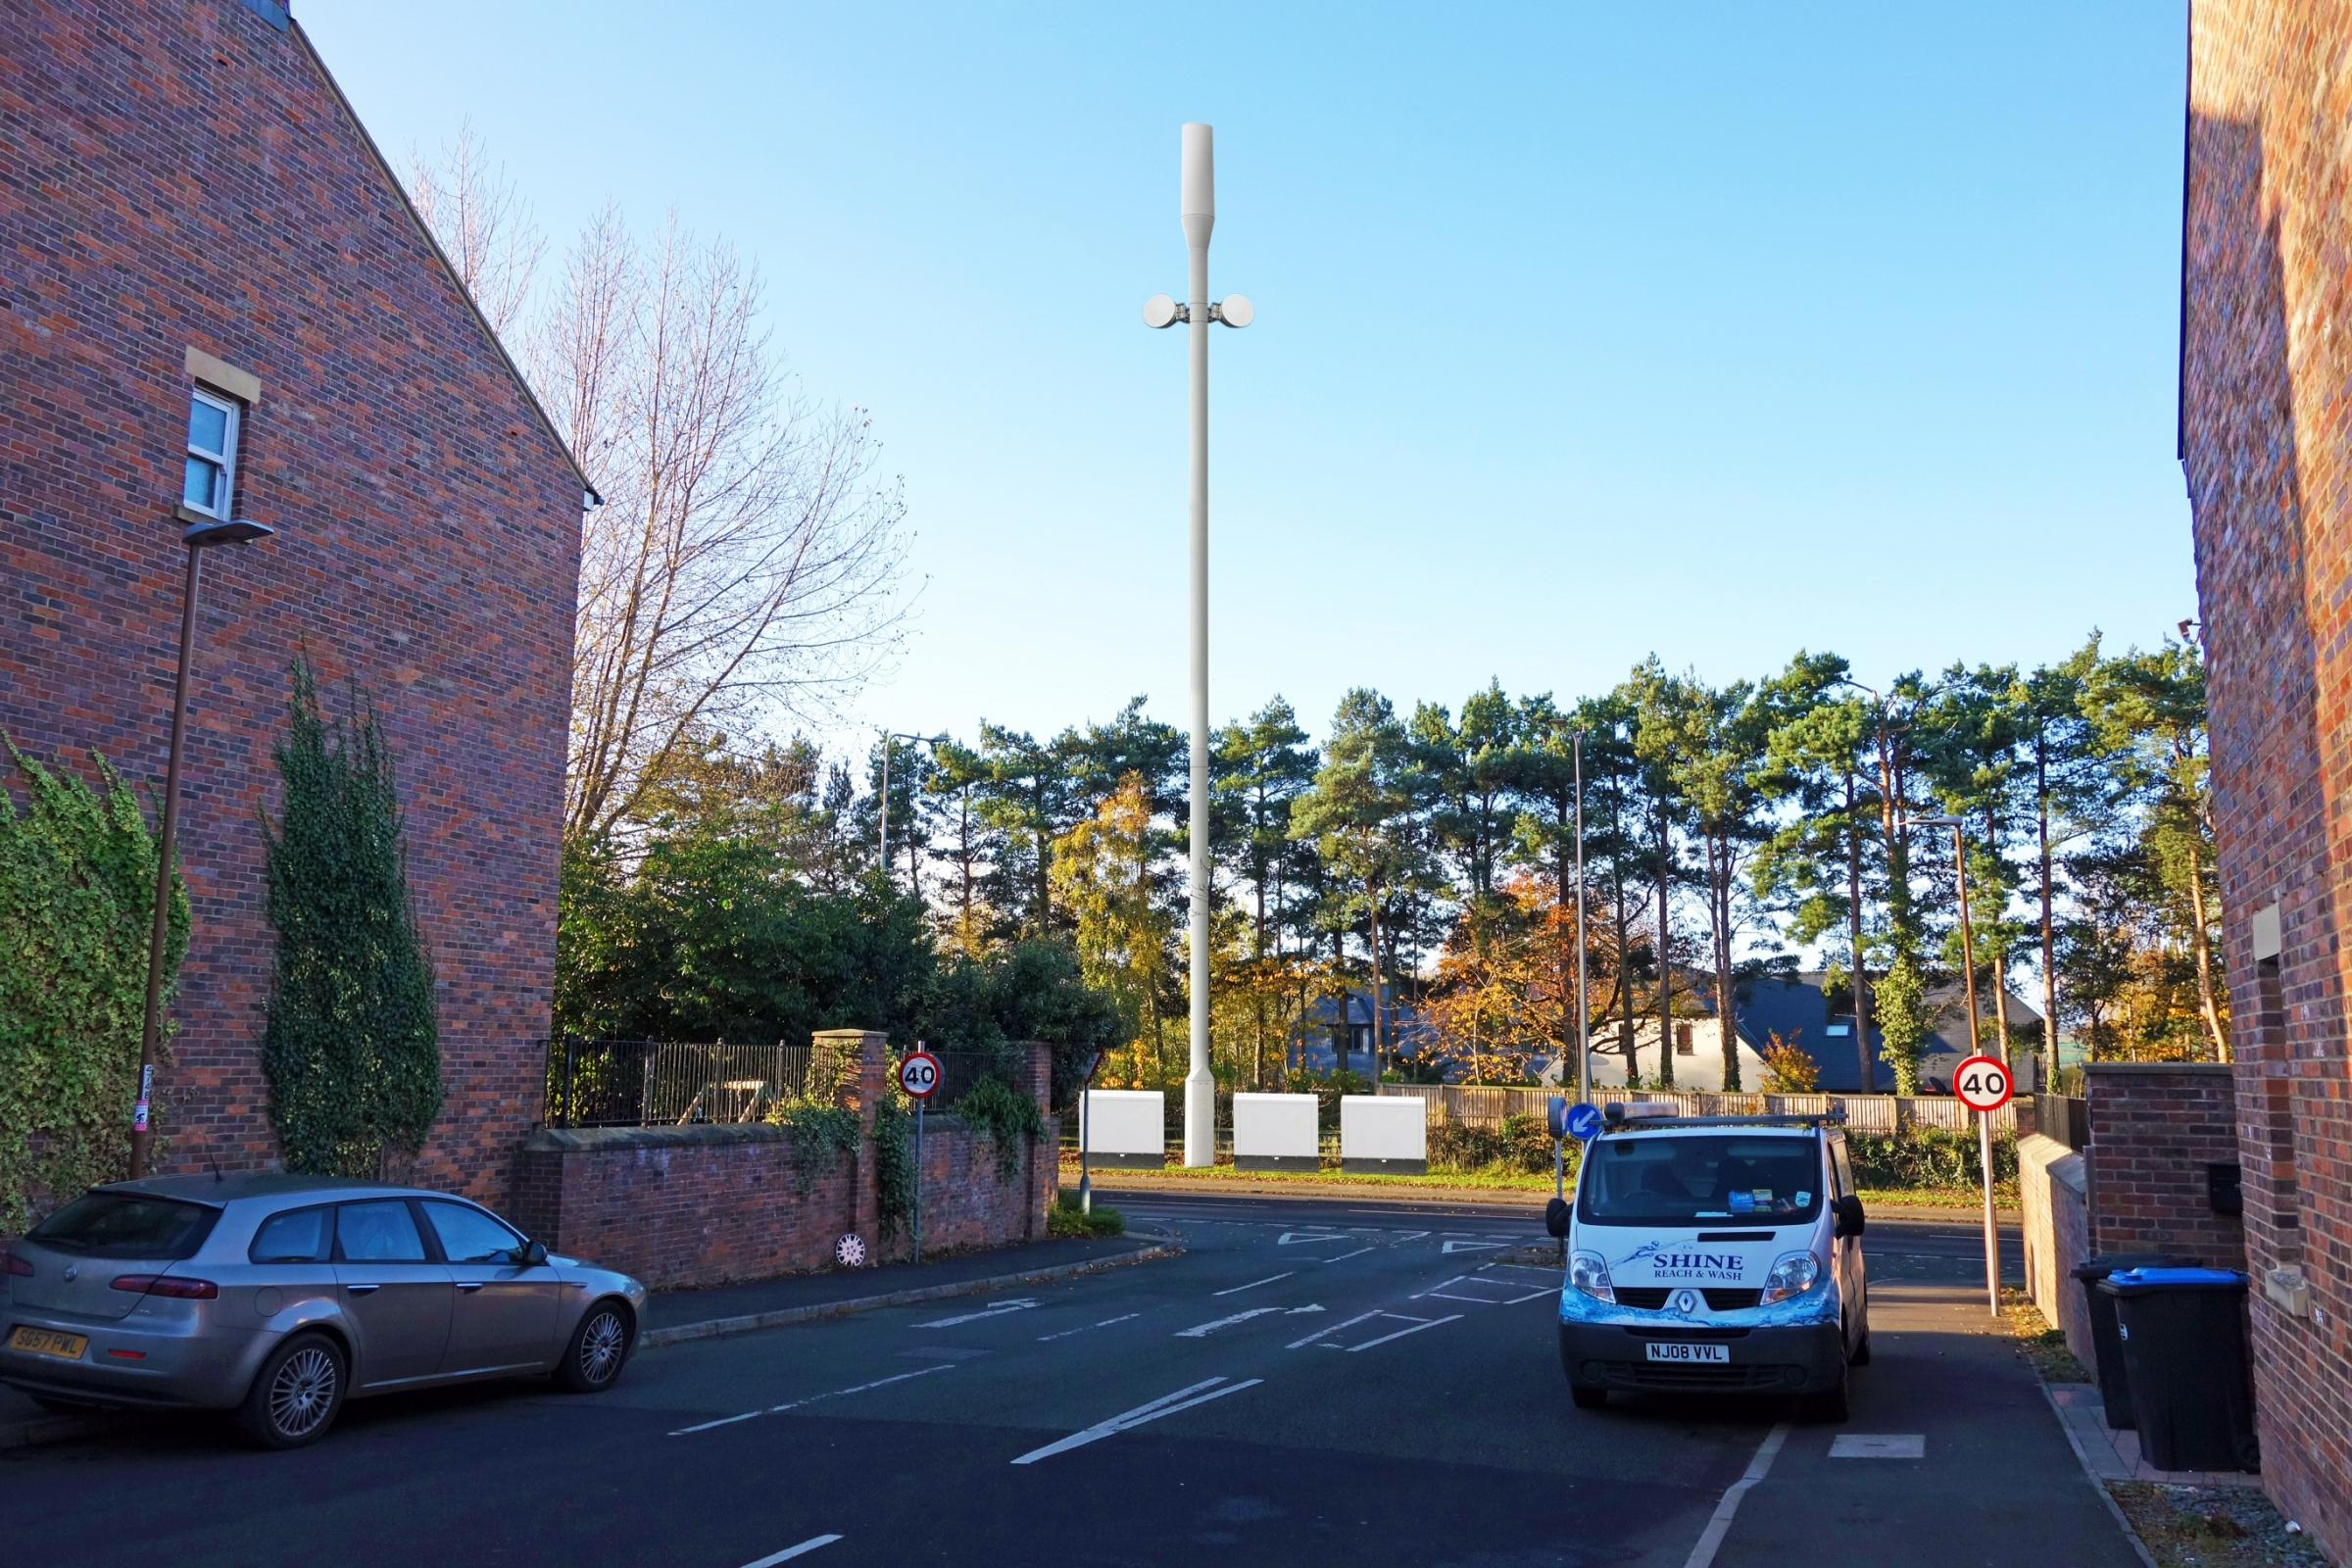 A mock-up of how the proposed mast would look if built next to the A167 Darlington Road, in Neville's Cross, Durham